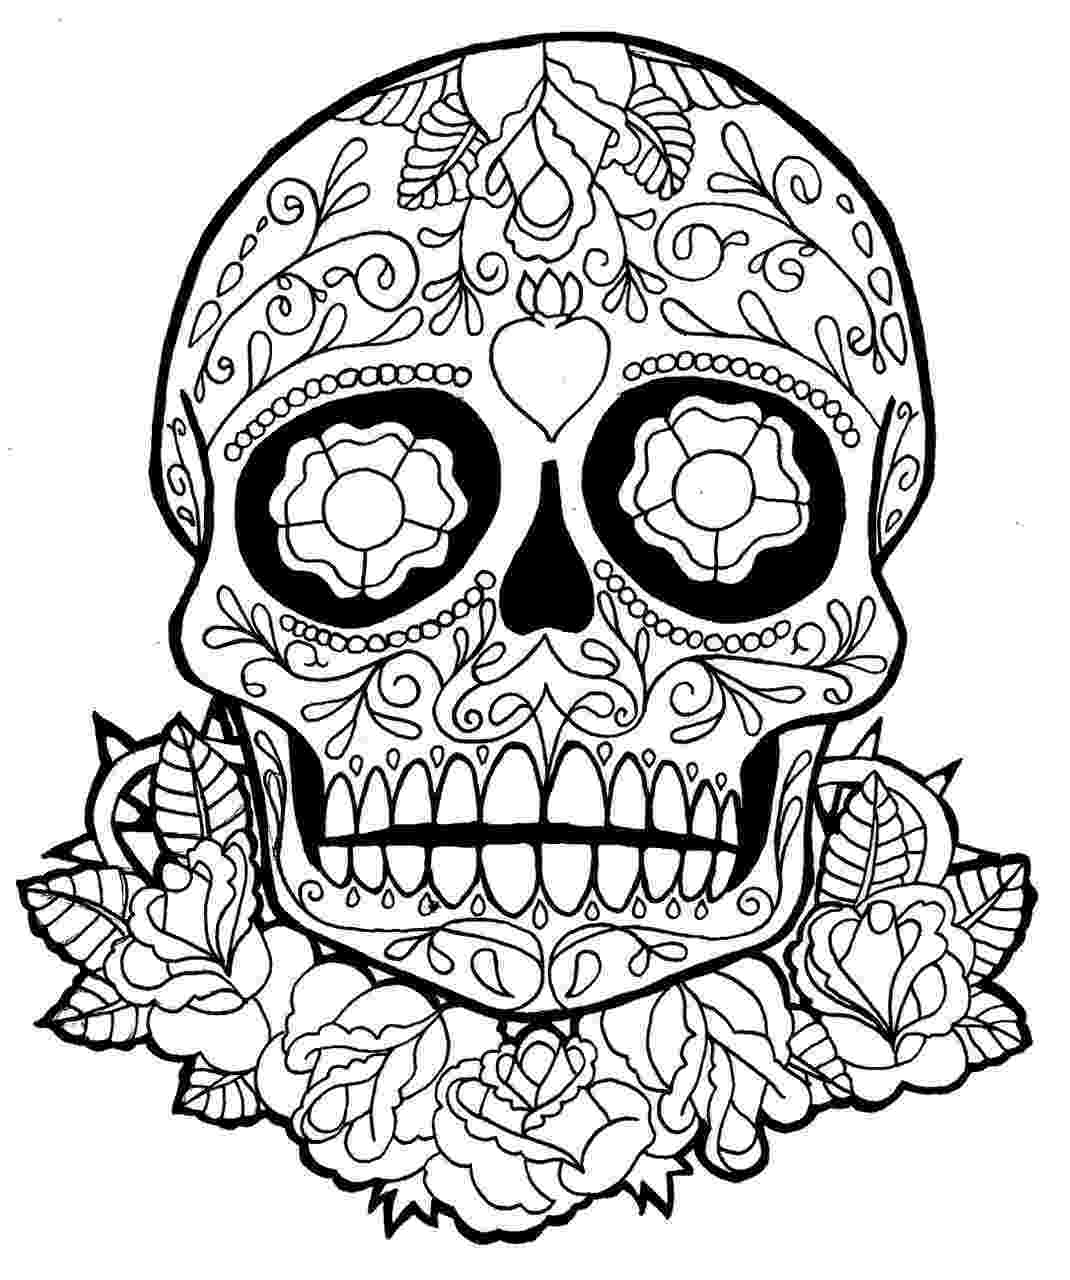 day of the dead coloring skulls dia de los muertos coloring pages to download and print coloring of the skulls dead day